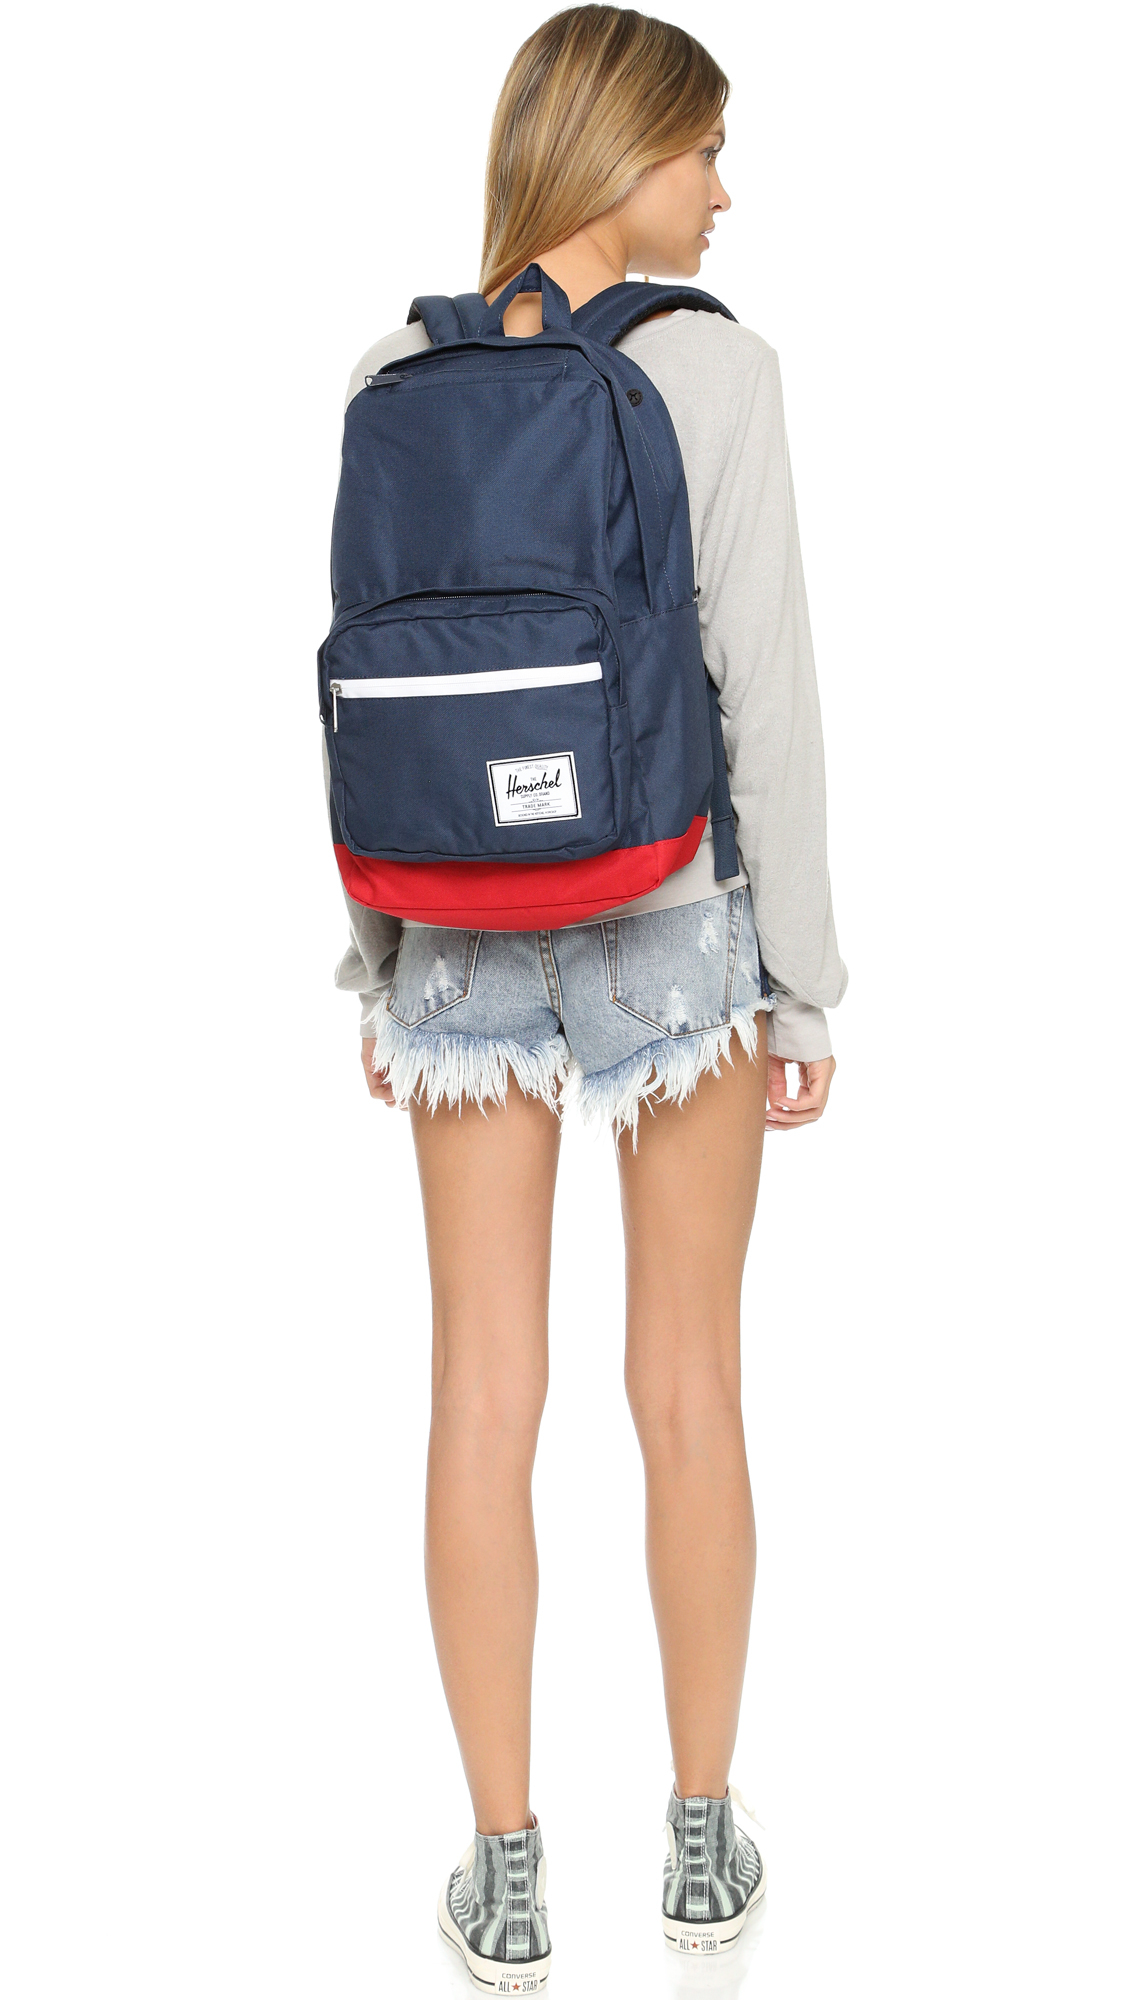 6e00b6a7577 Lyst - Herschel Supply Co. Pop Quiz Backpack - Navy red in Blue